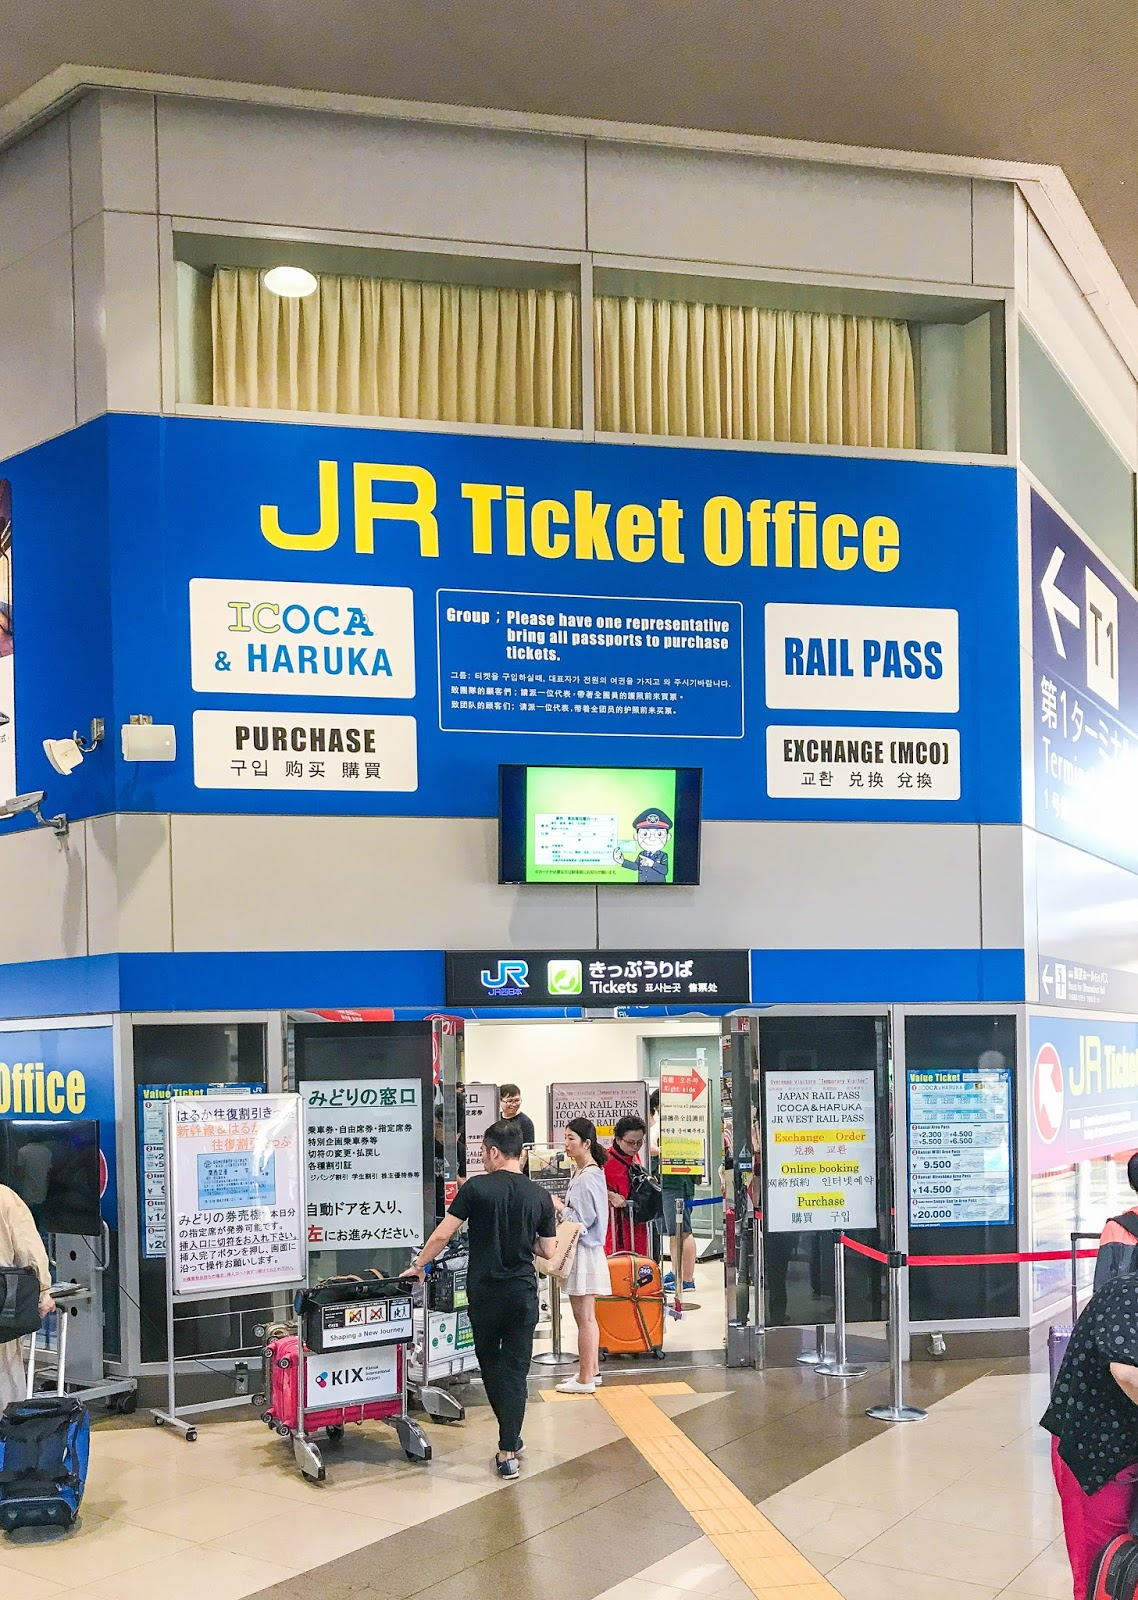 JR Ticket Office Osaka airport